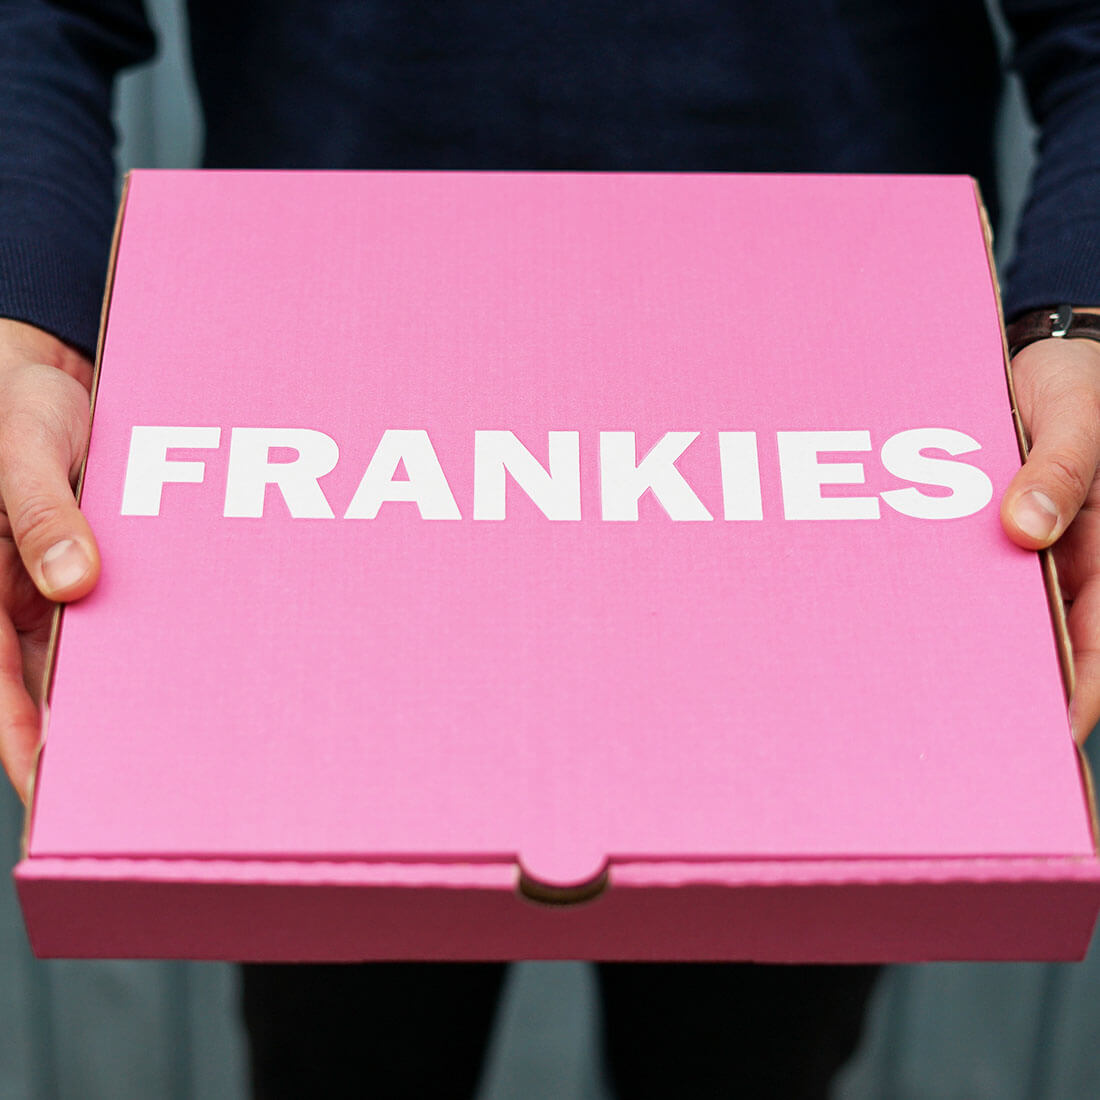 A pink pizza box with a white Frankies logo.